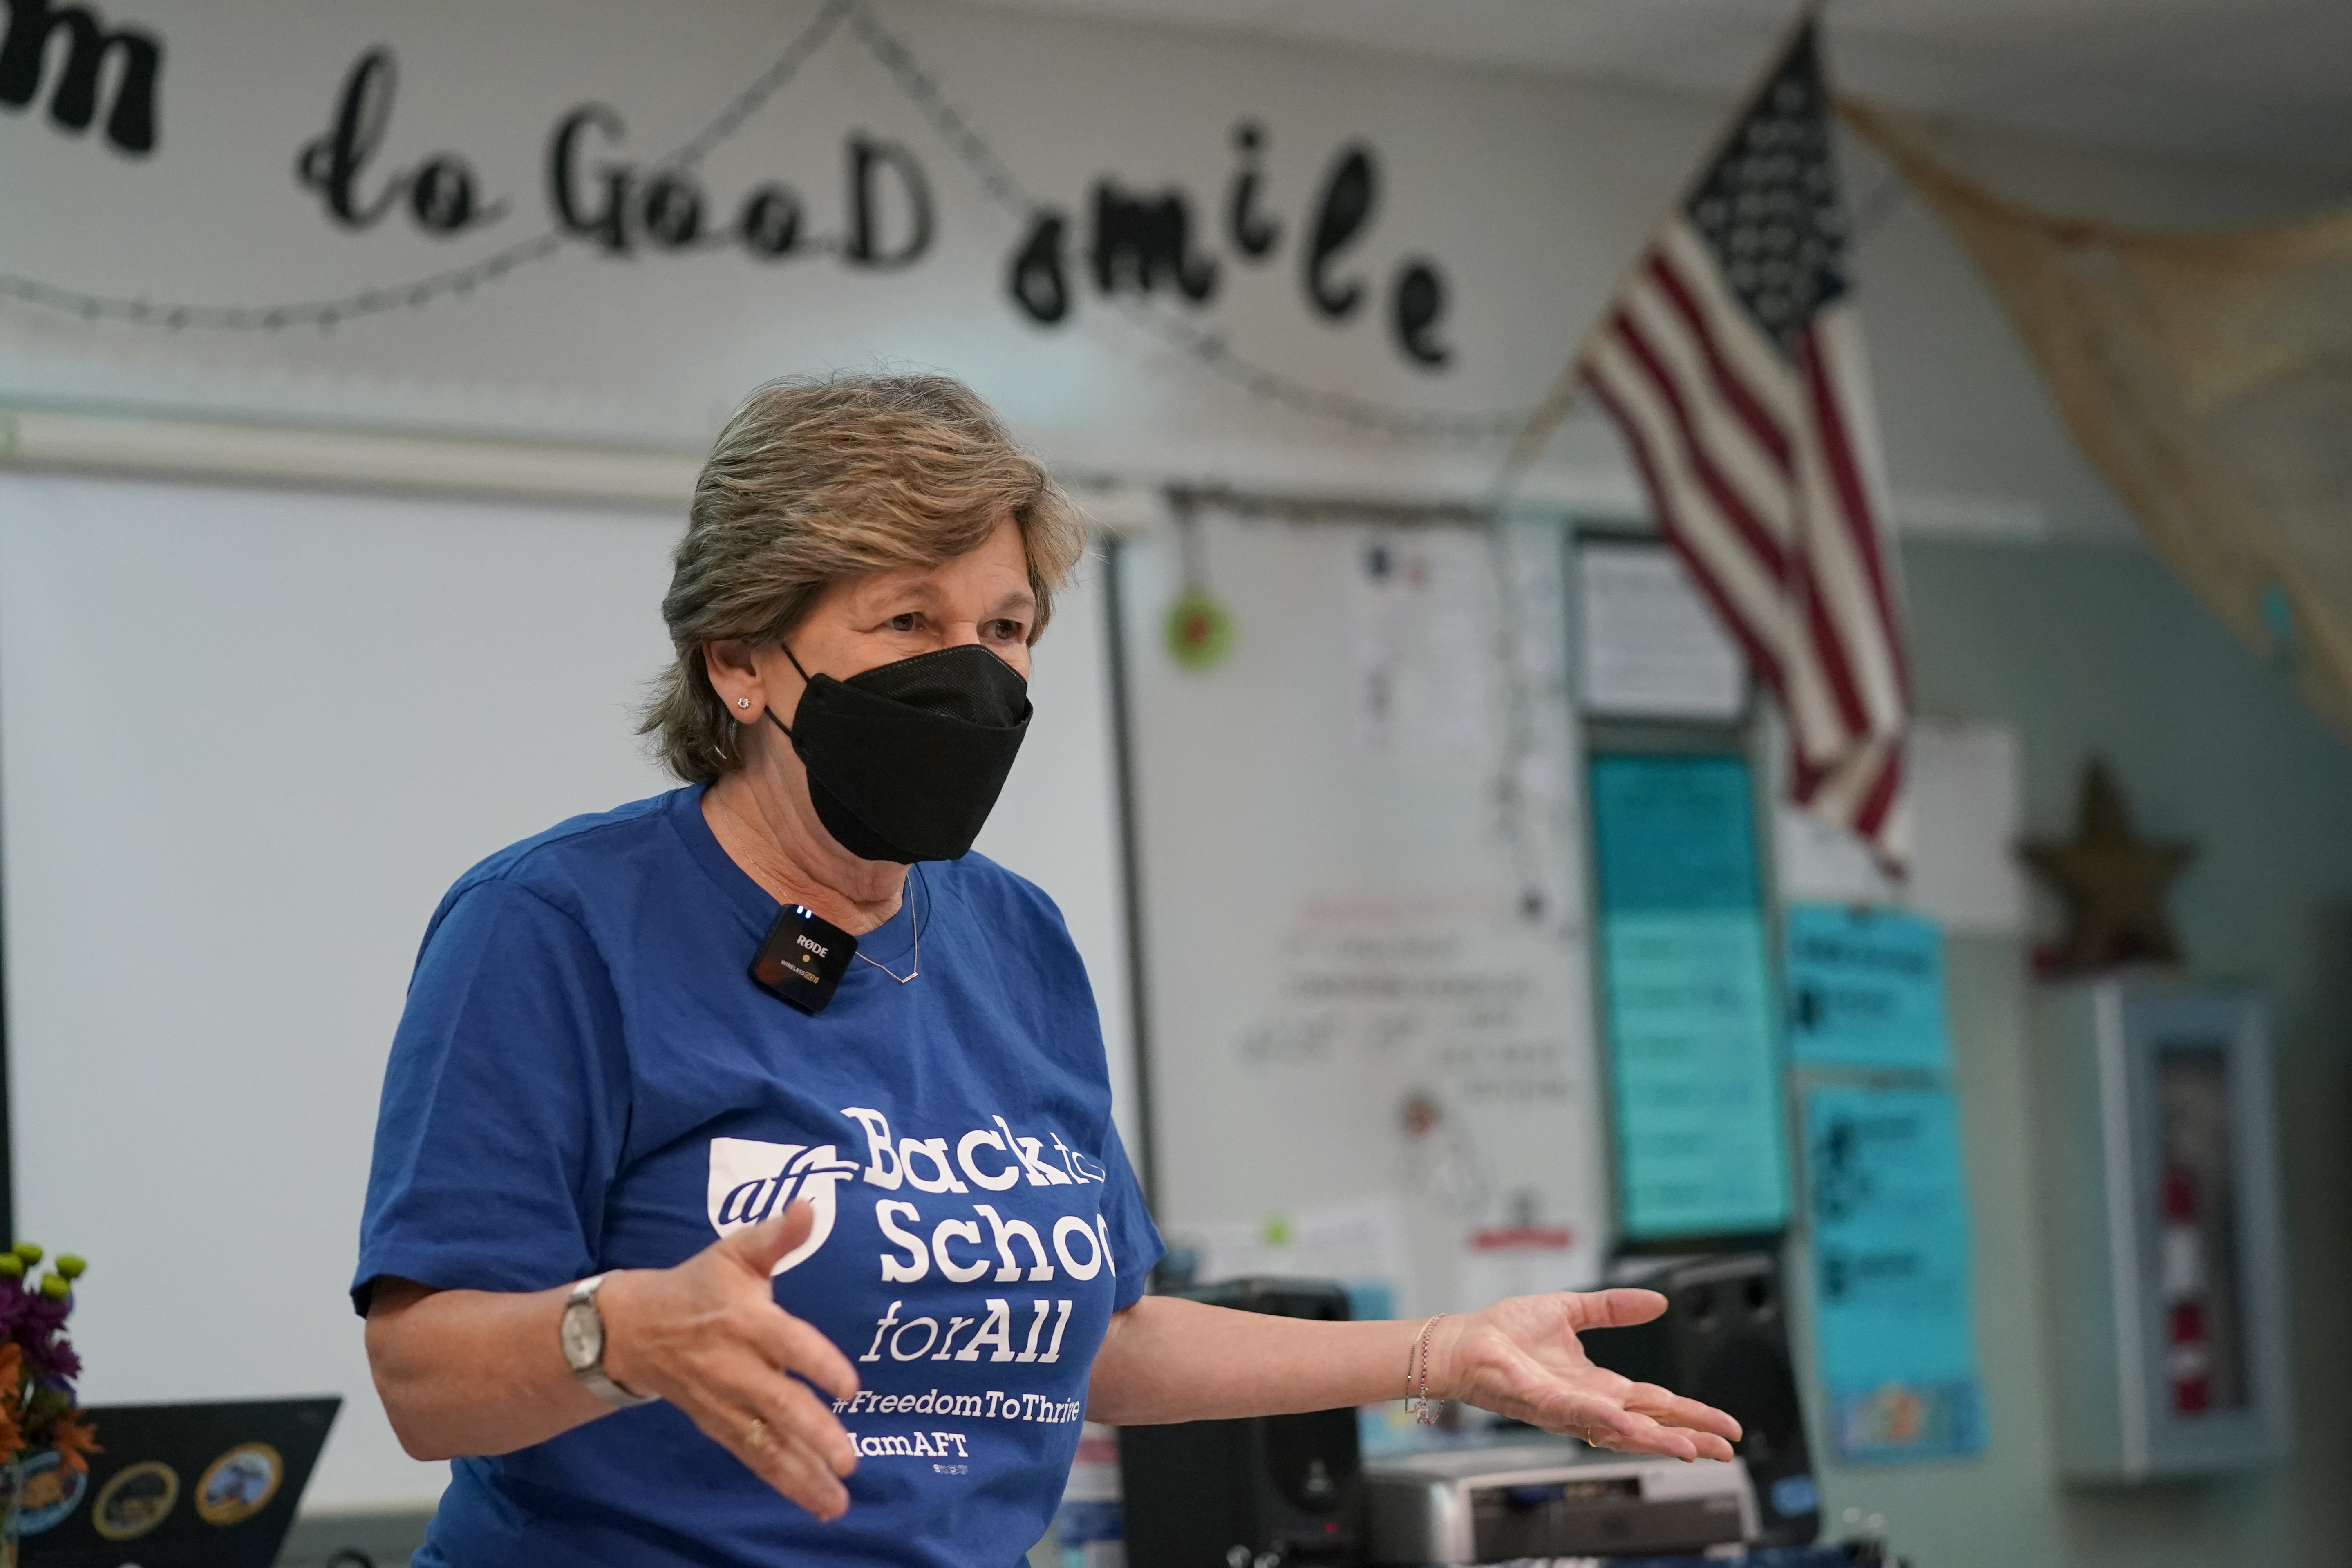 American Federation of Teachers President Randi Weingarten speaks to students at the New River Middle School, Thursday, Sept. 2, 2021, in Fort Lauderdale, Florida.